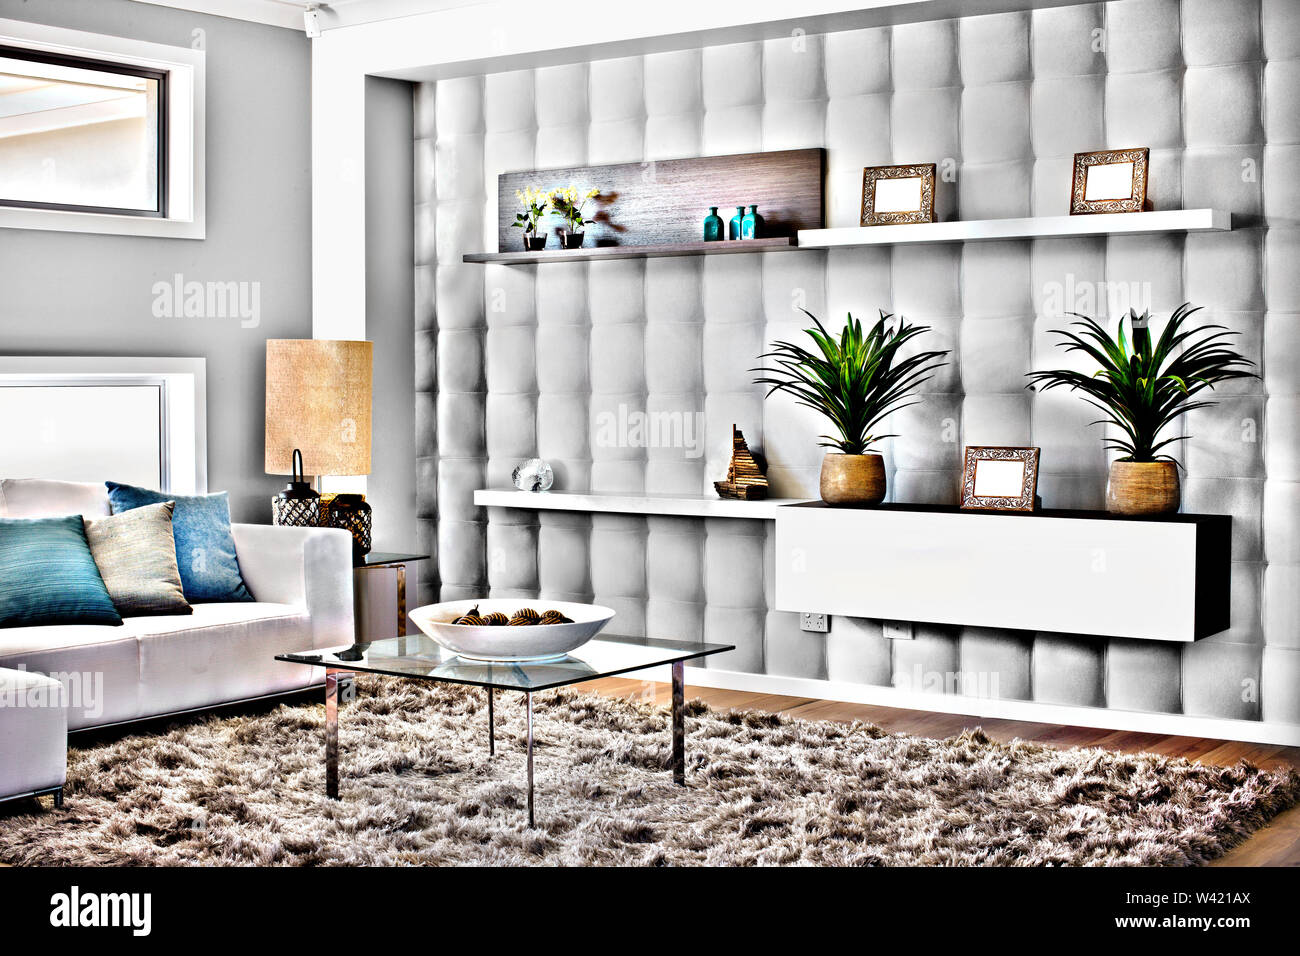 Modern Living Room With The Carpet And Glass Table Beside The Rack Full Fancy Items Like Plants In The Vase Near To The Lamp And Sofa With Pillows Stock Photo Alamy